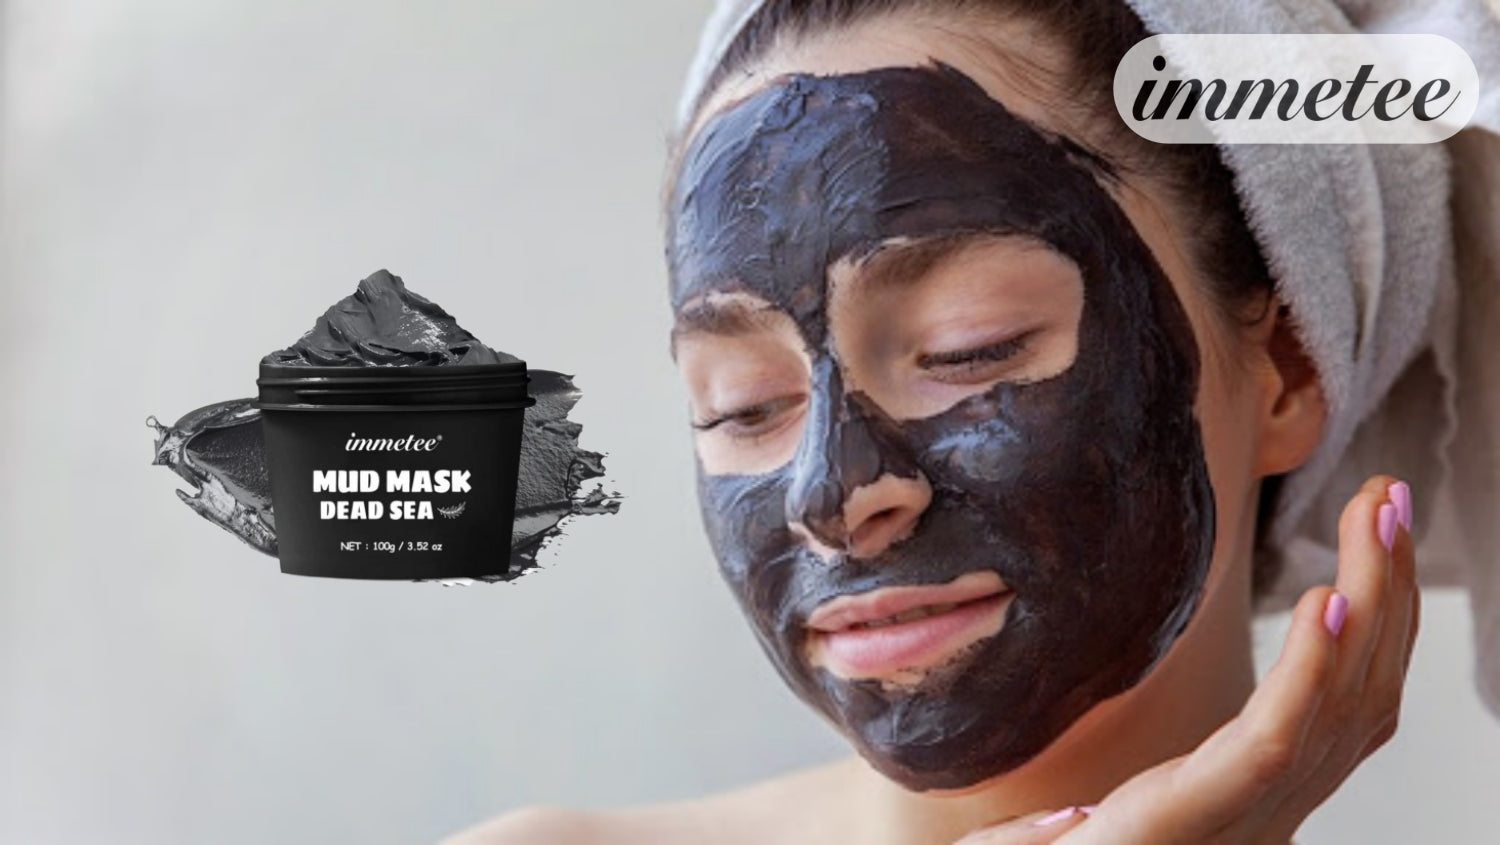 IMMETEE Face and body masks for dirt in the sea Dead pig mud masks - AurelijosSPA